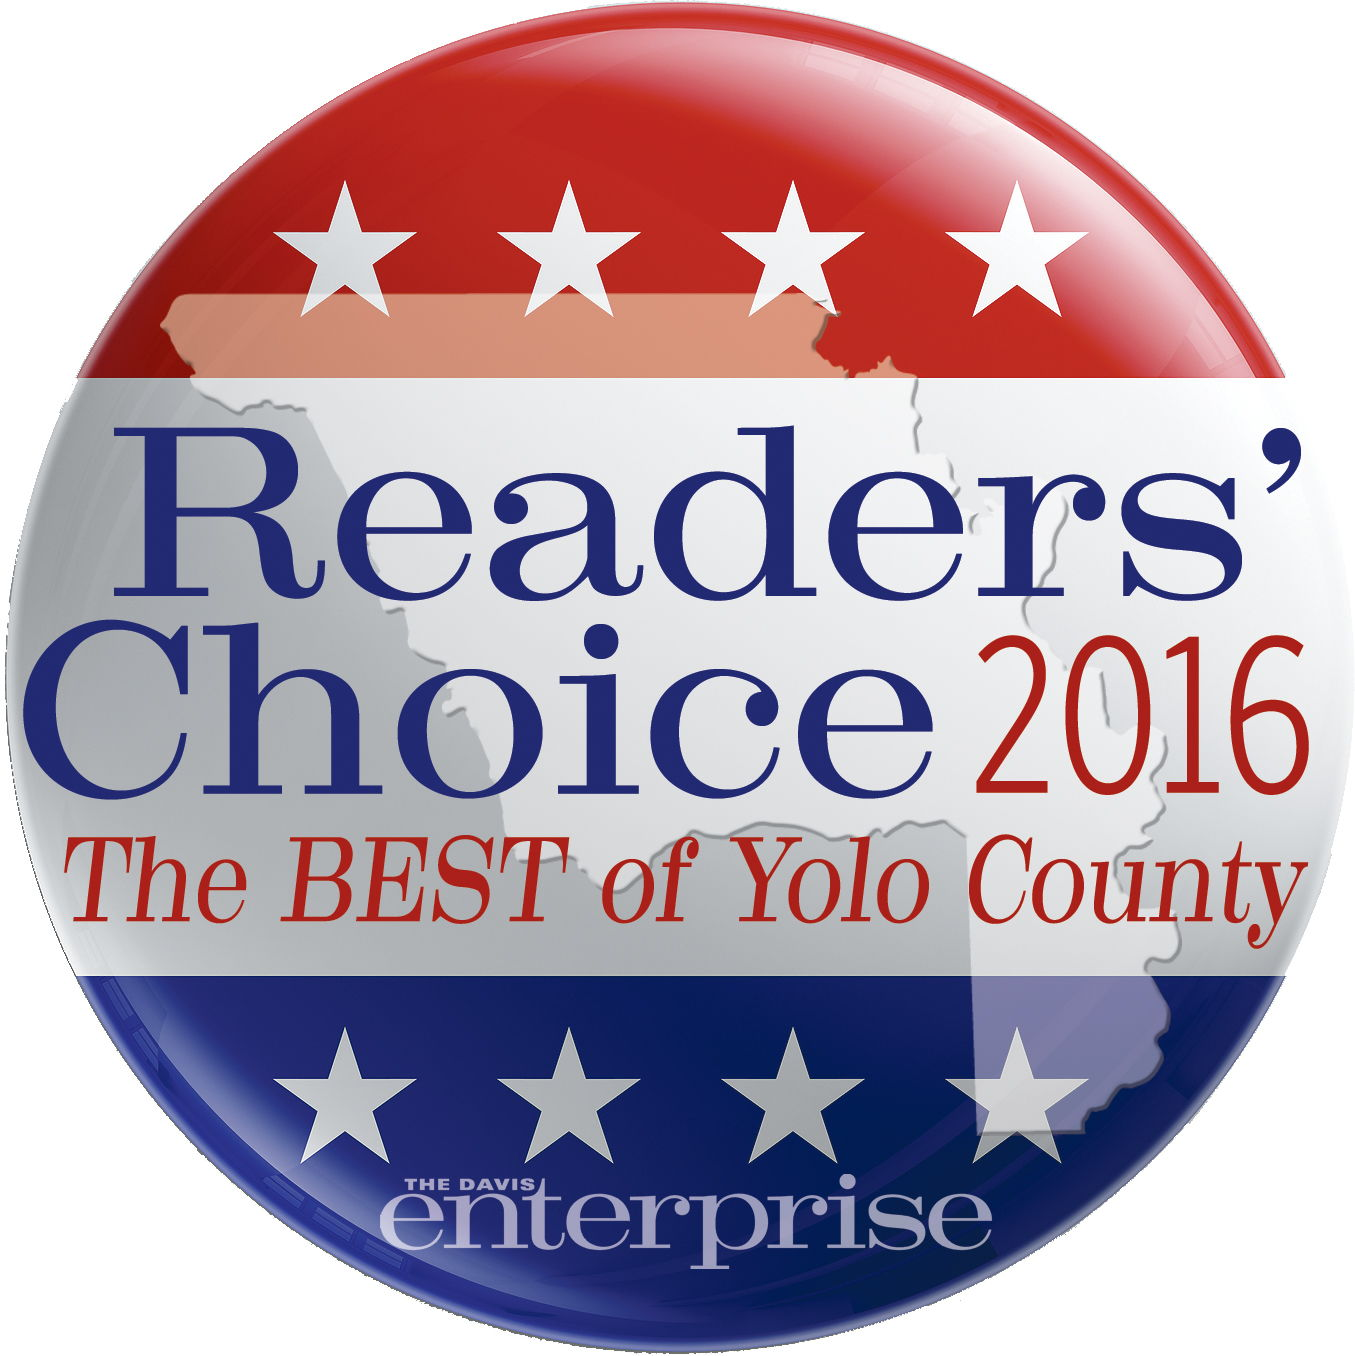 The Best of Yolo County 2016